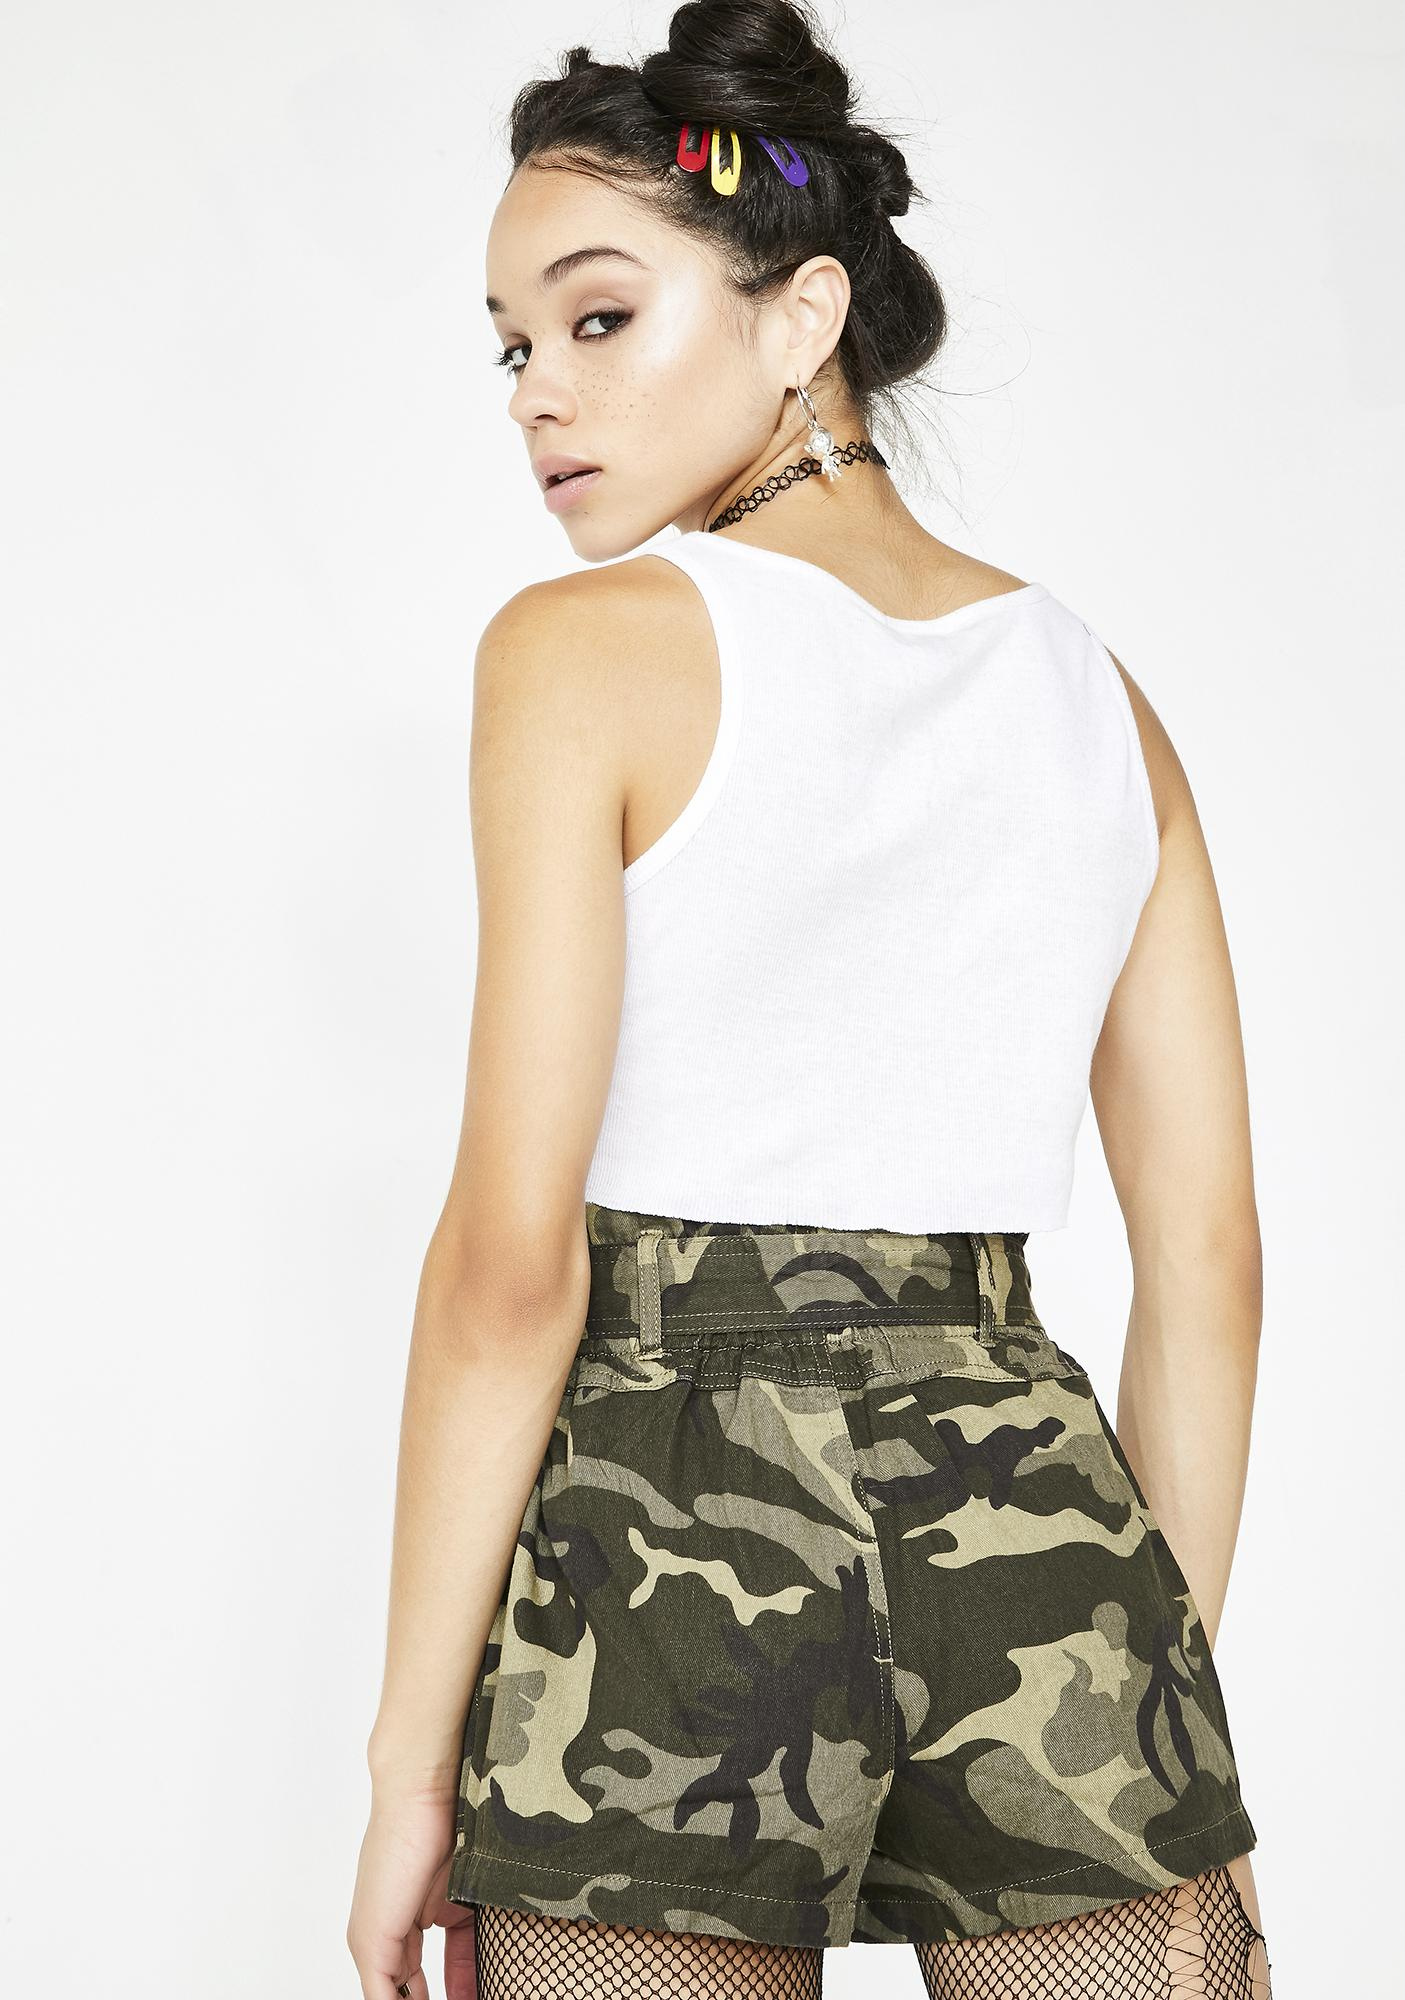 Deadly Trooper Camo Shorts